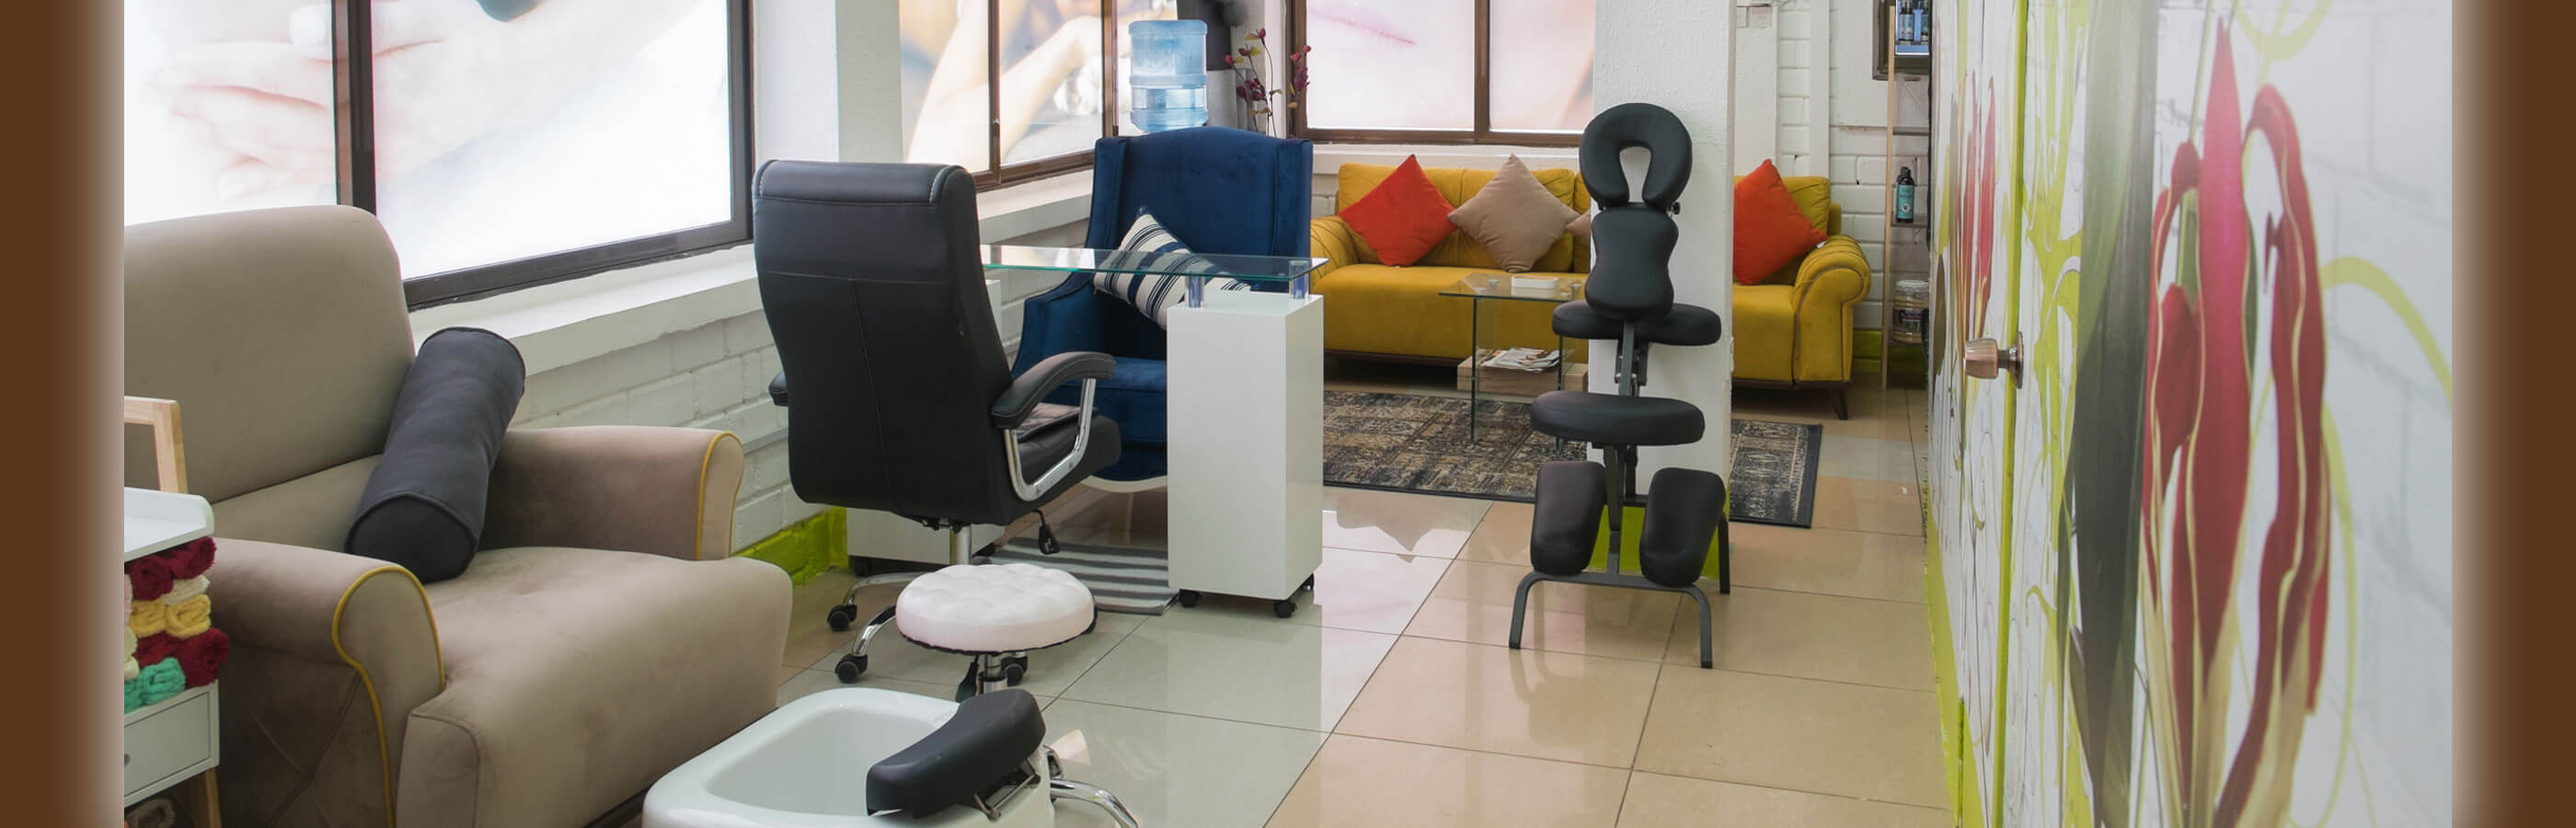 Massage and Spa salon in Accra, East Legon